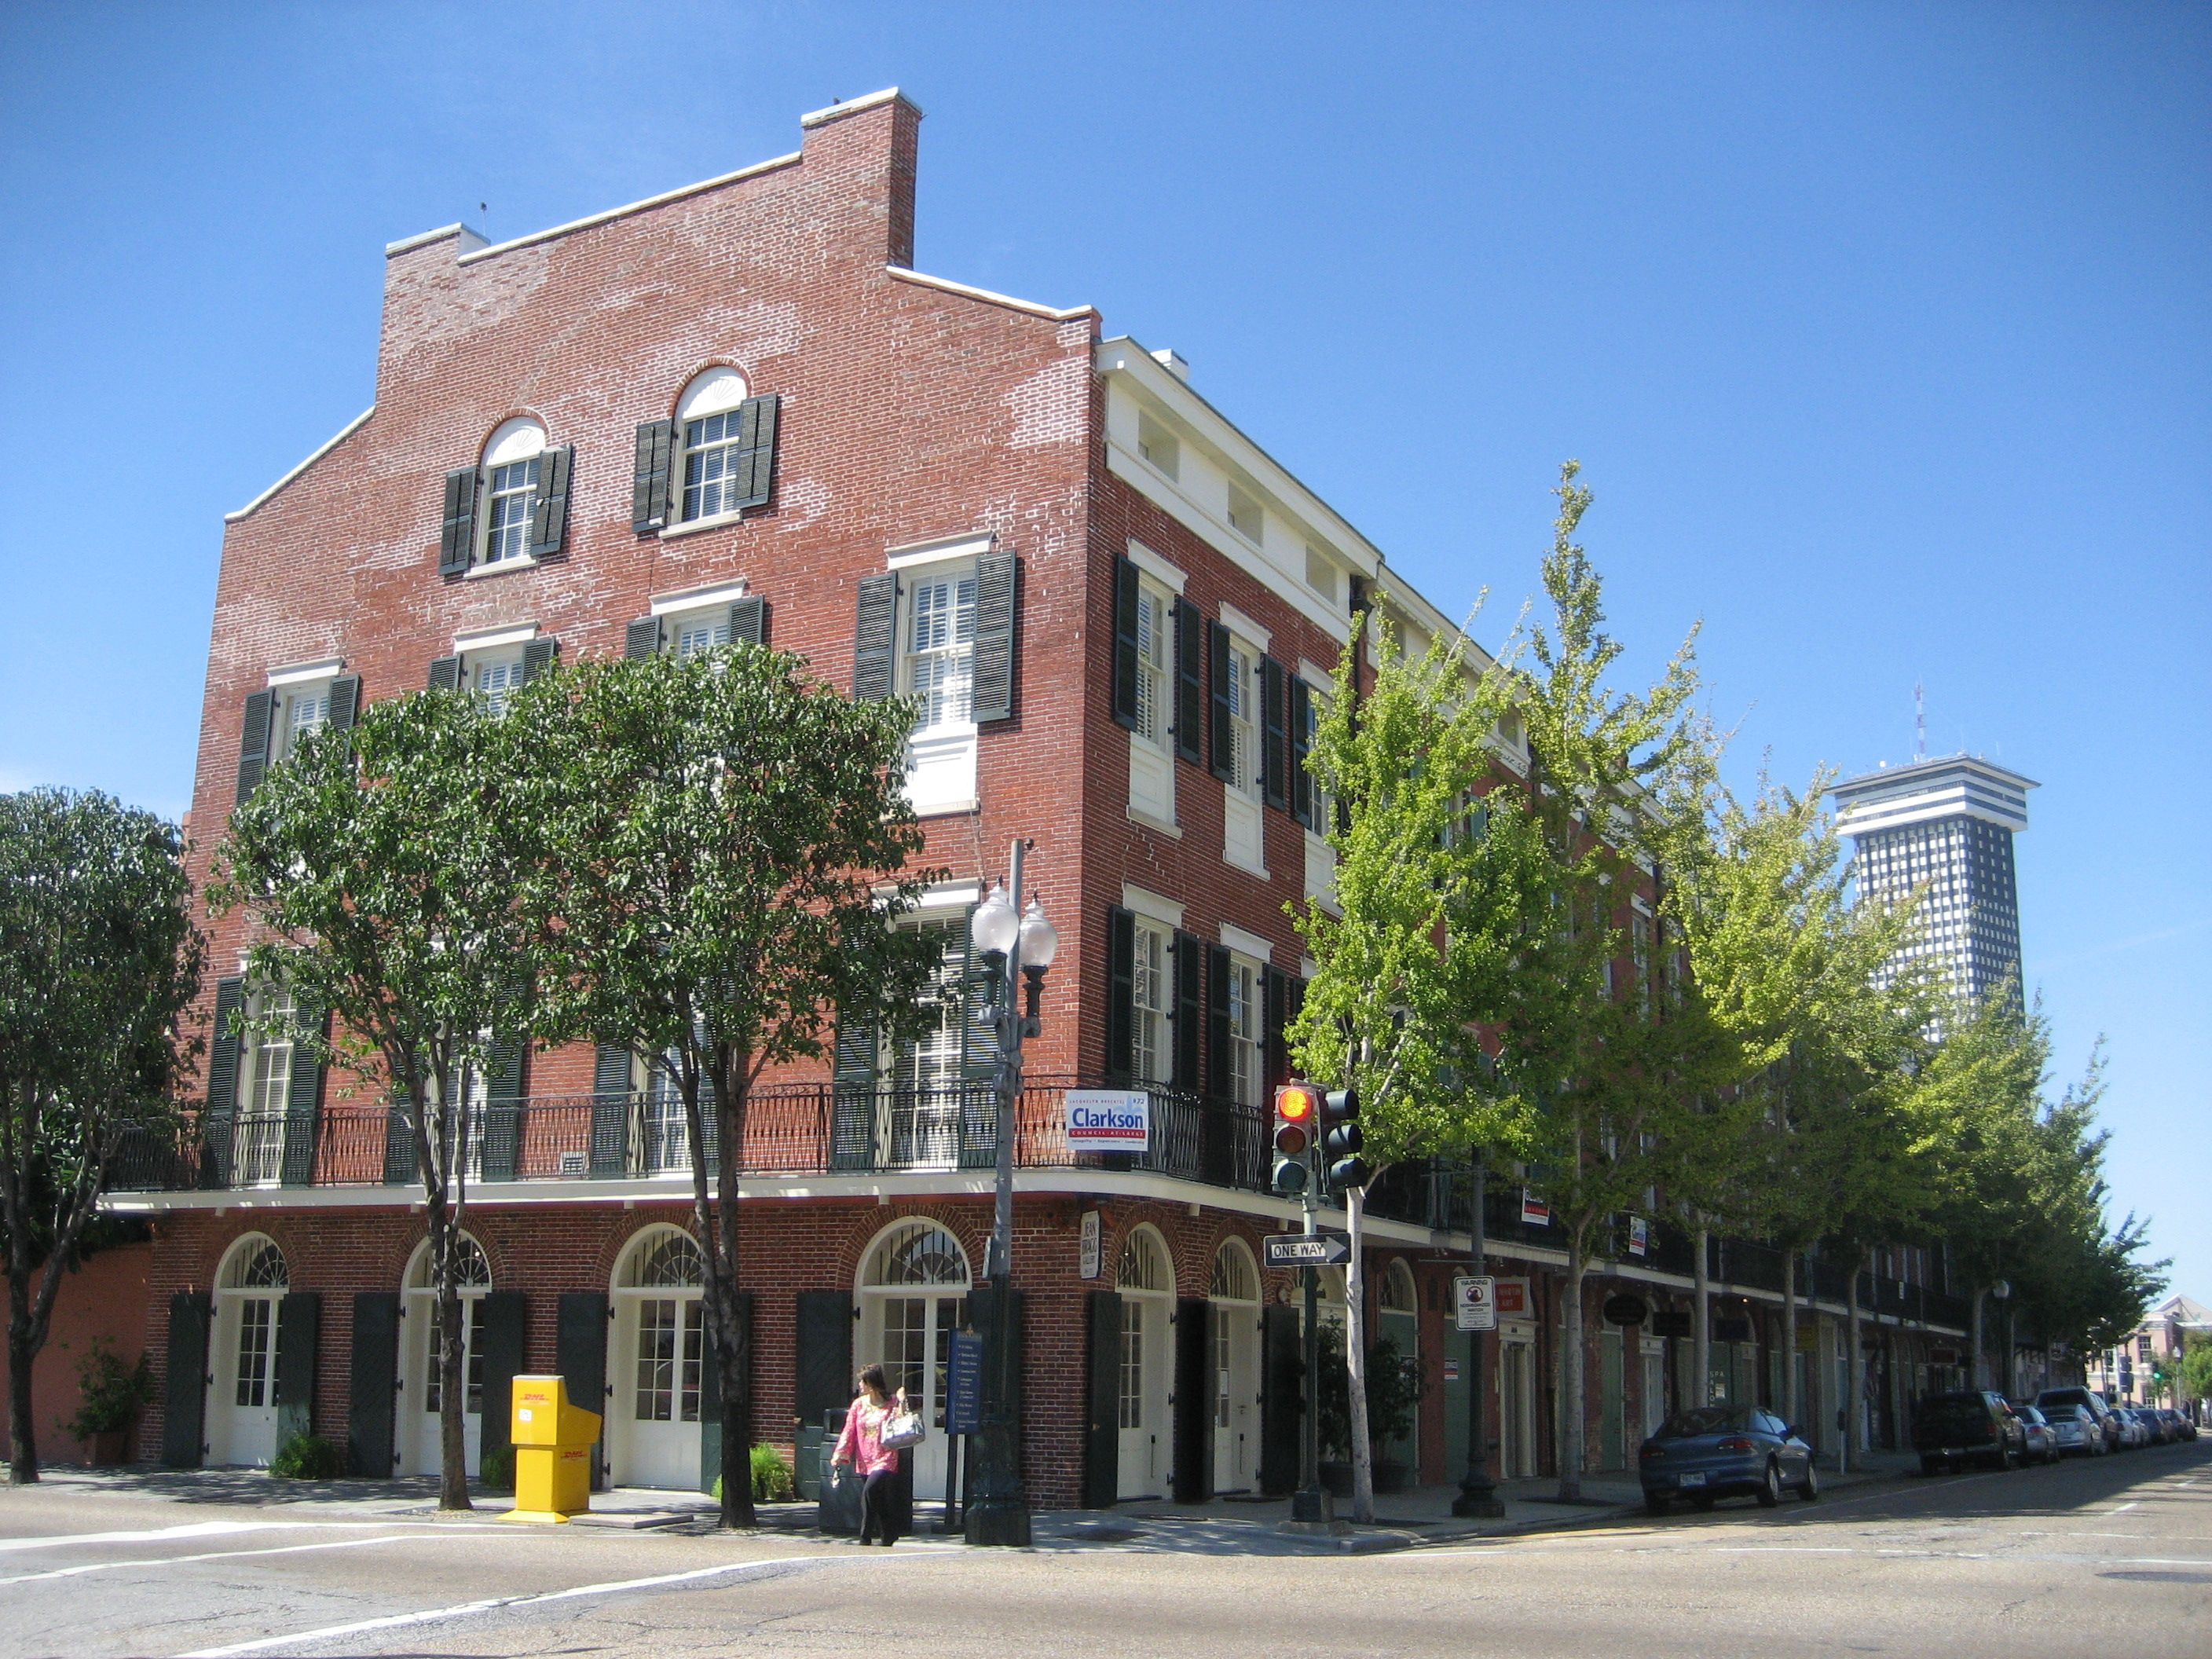 Federal Townhouses With Commercial Space Behind The Ground Floor Arcaded Windows Style Architecture Occurred In United States Between 1780 And